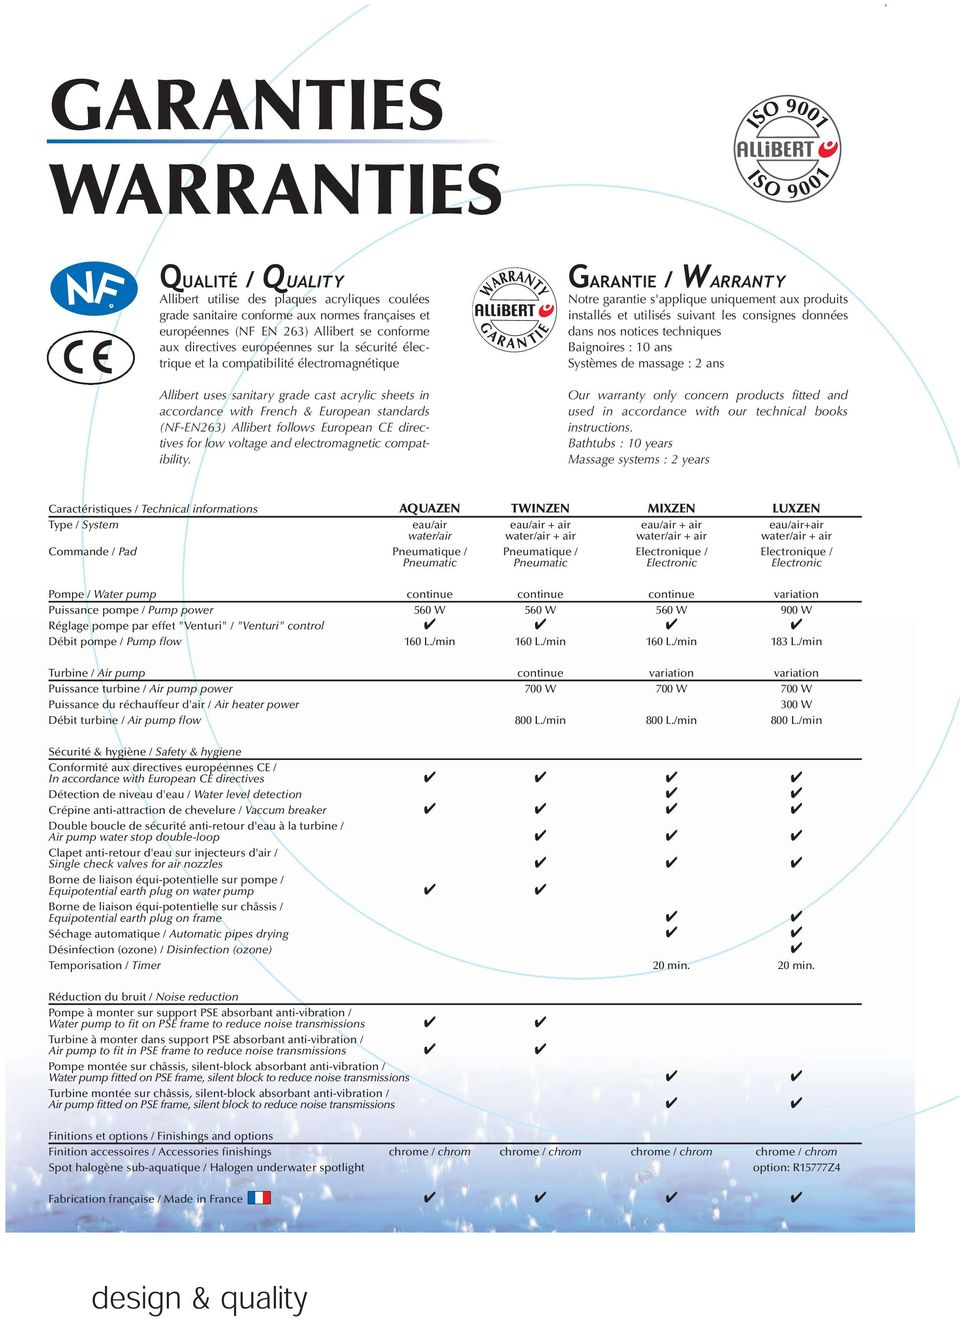 follows European CE directives for low voltage and electromagnetic compatibility GARANTIE / WARRANTY Notre garantie s'applique uniquement aux produits installés et utilisés suivant les consignes